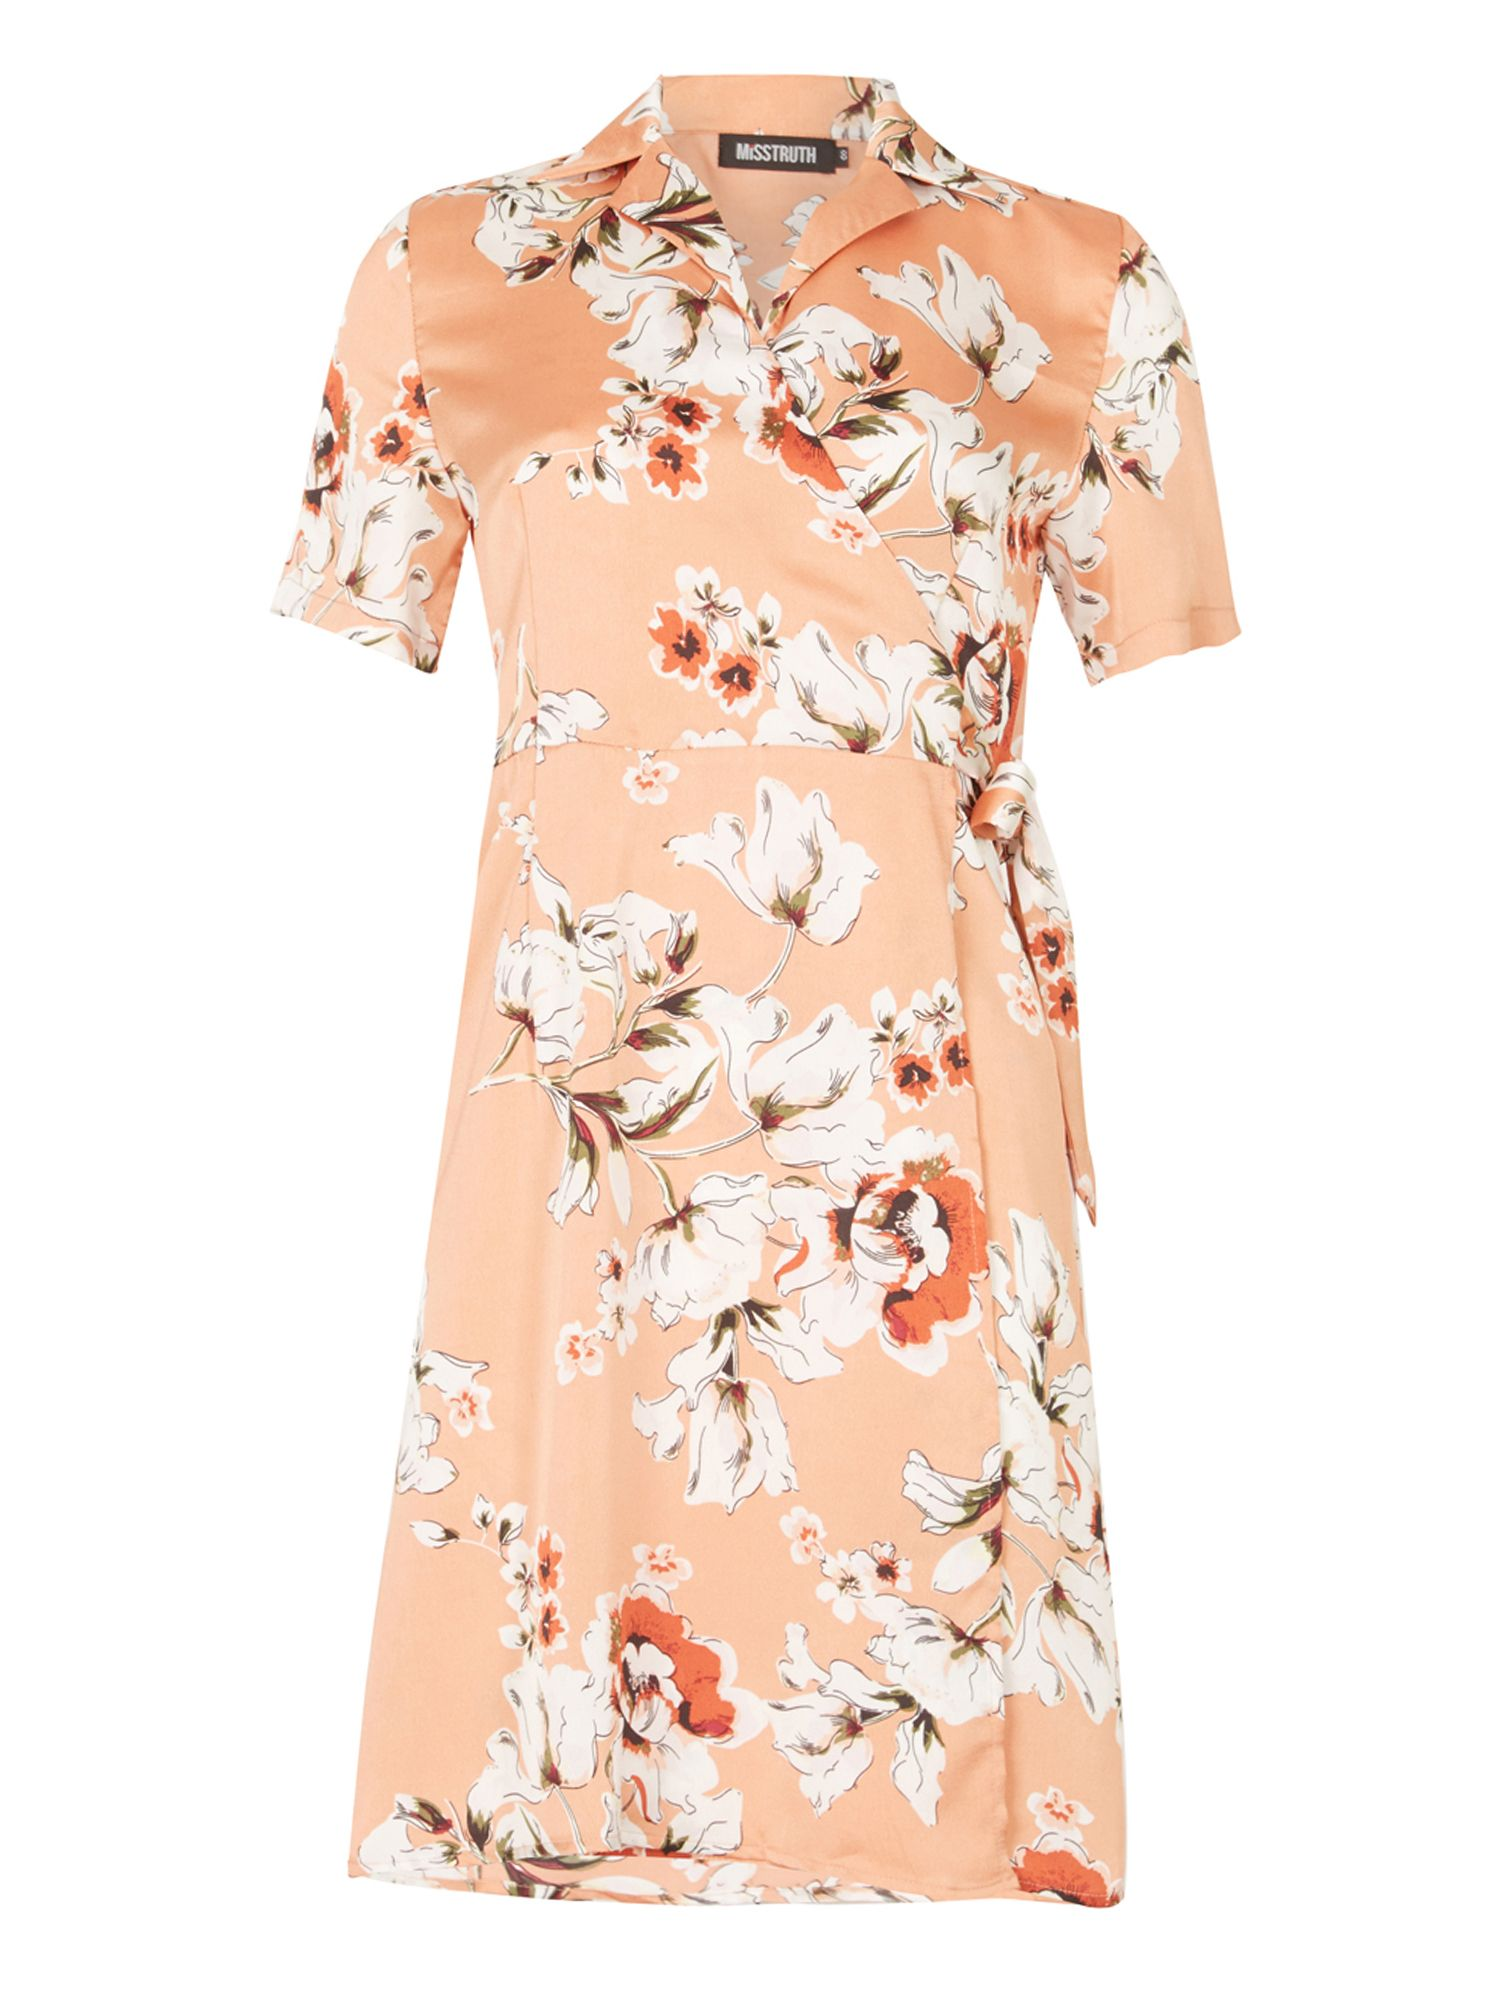 MISSTRUTH Floral Print Wrap Front Dress, Multi-Coloured